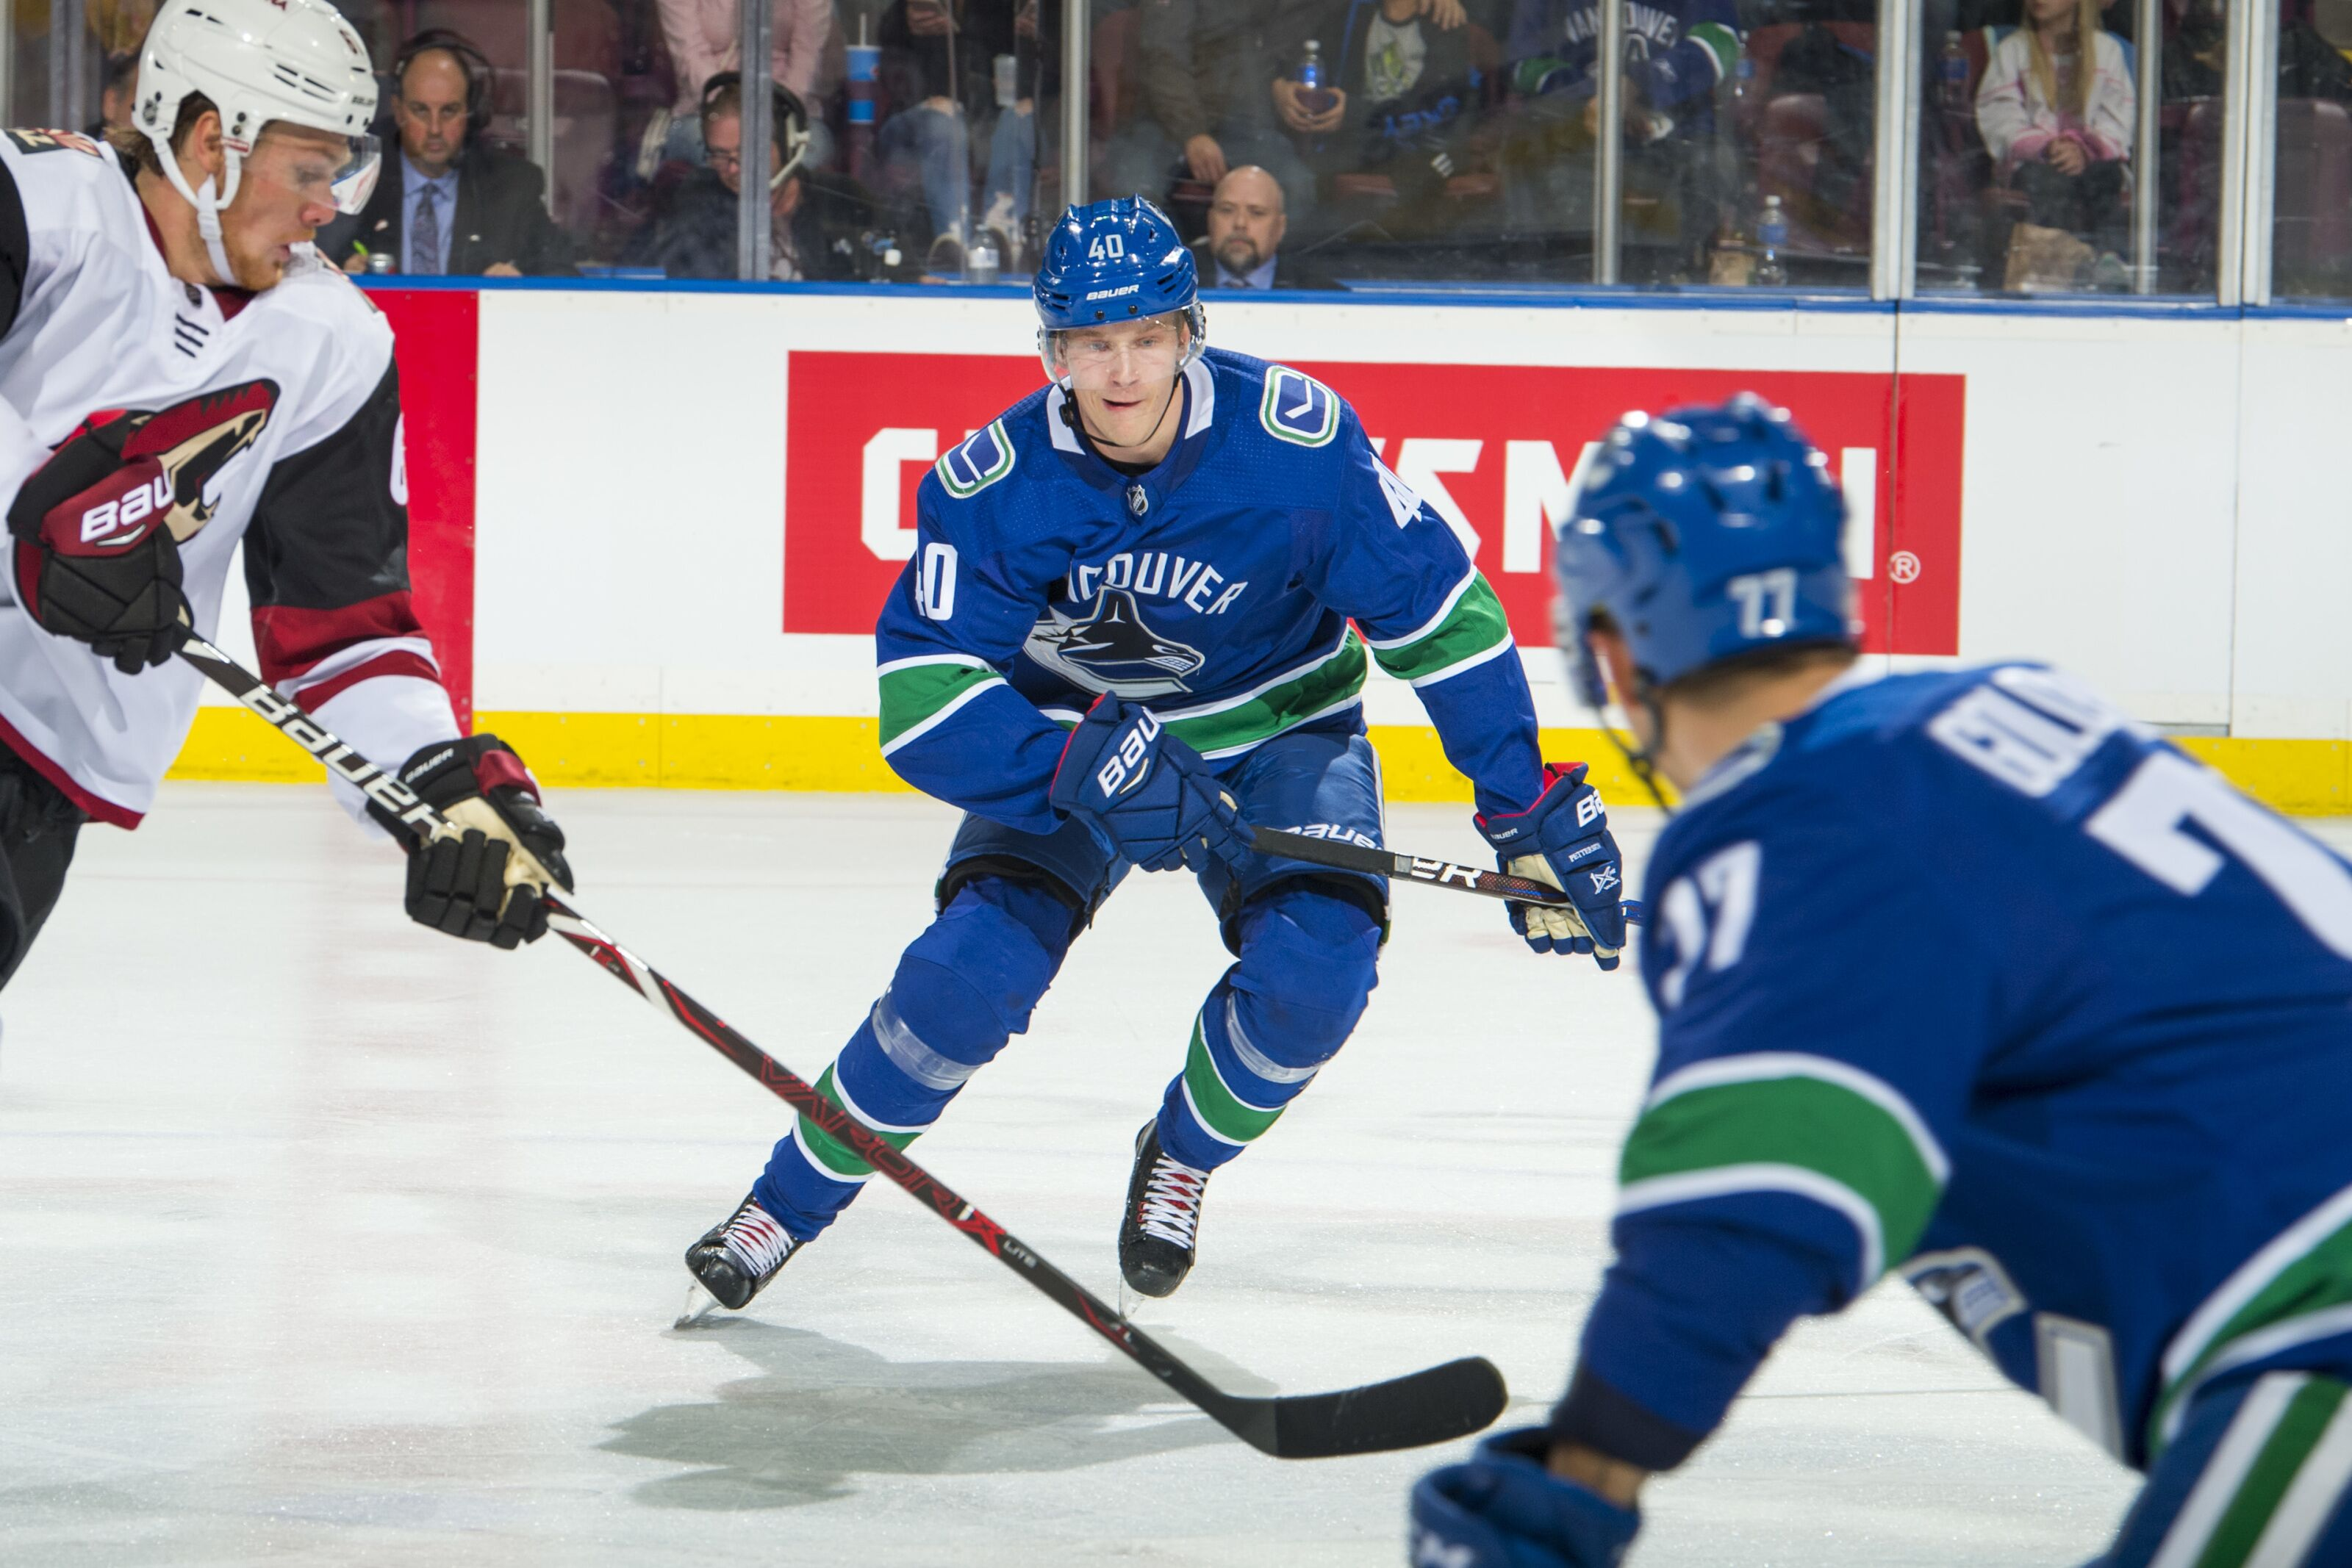 Projecting Vancouver Canucks player stats for 2018-19